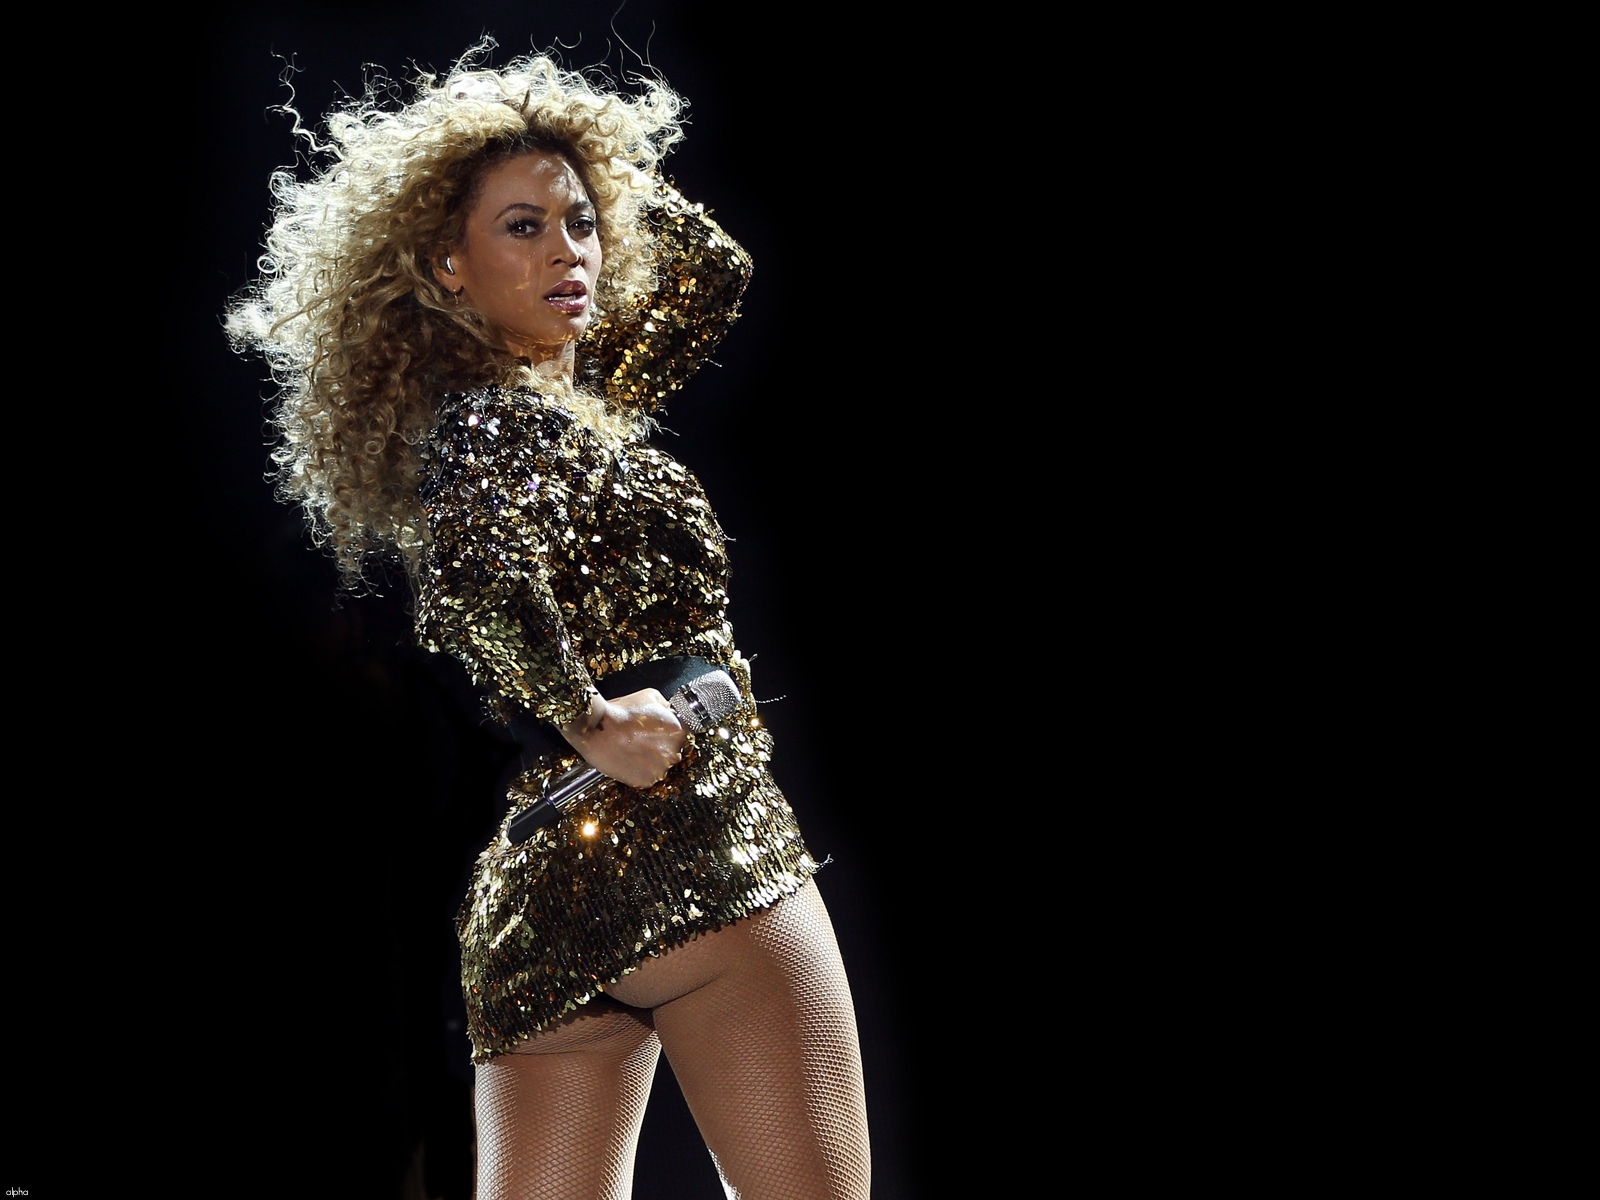 beyonce beyonce wallpaper 28692229 fanpop